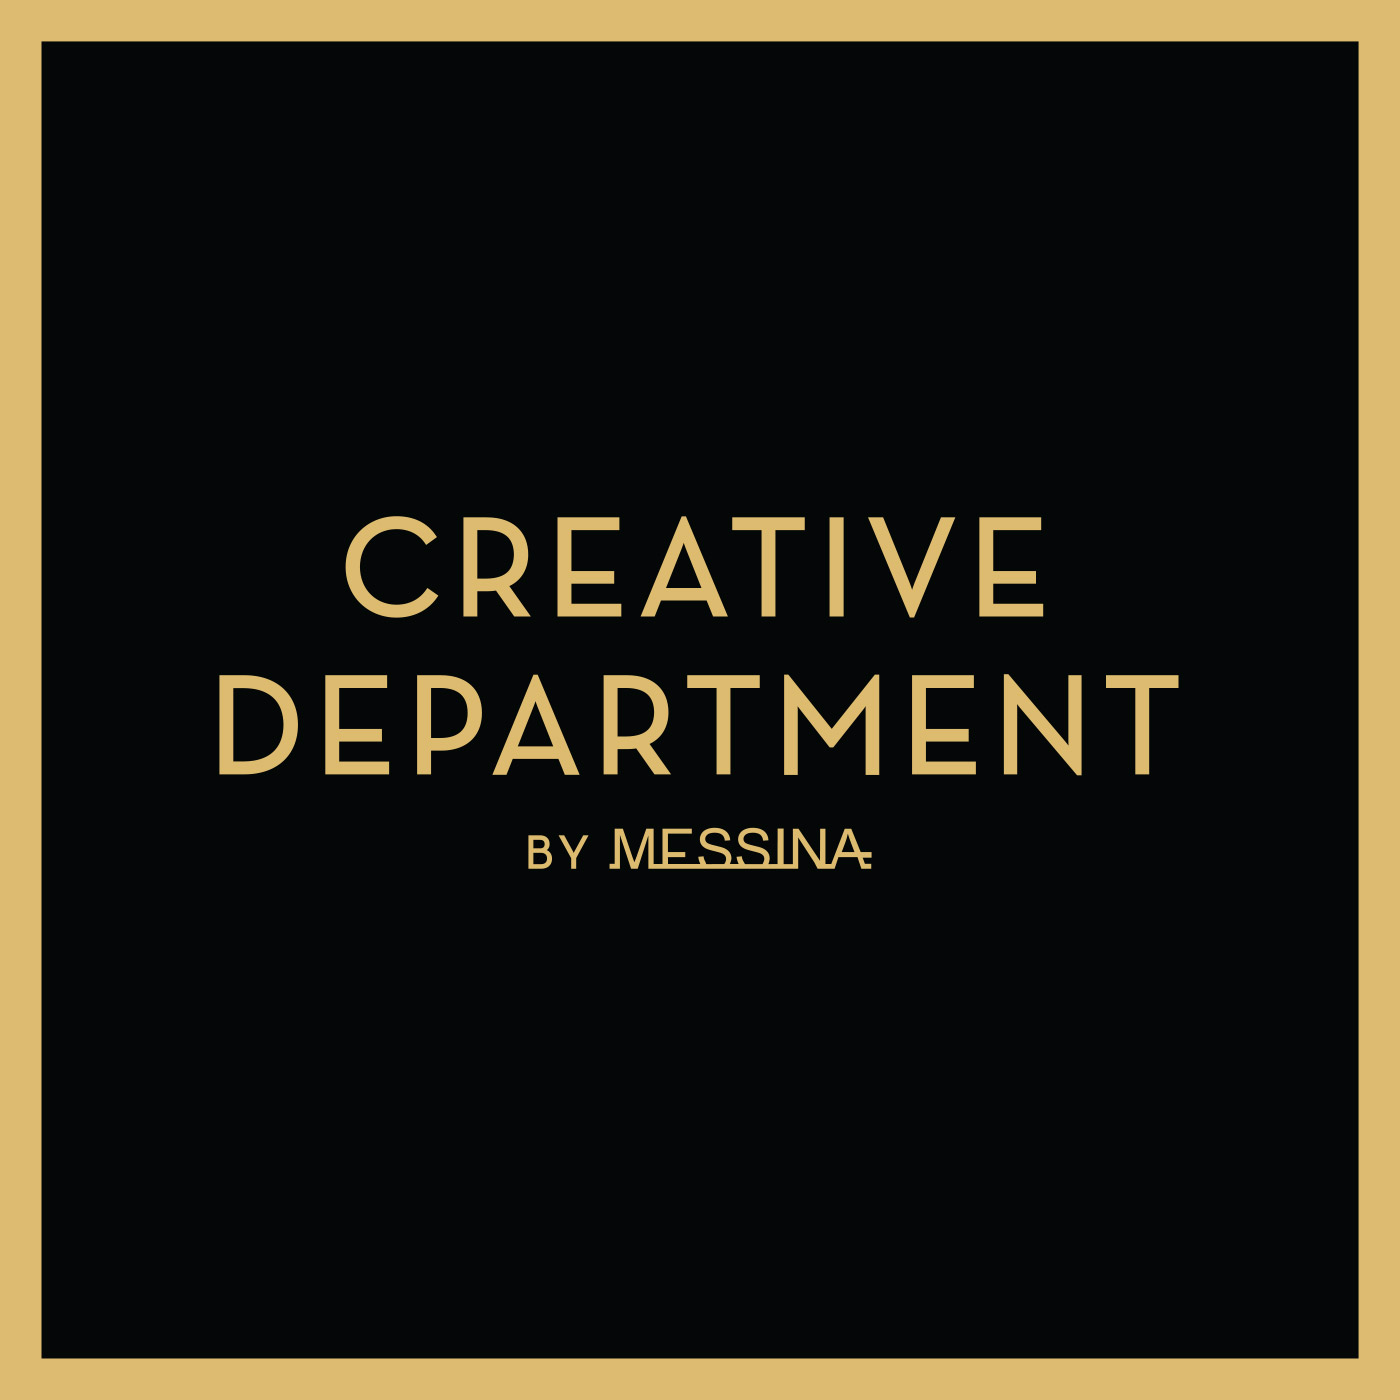 The Creative Department  - Messina's Degustation Experience